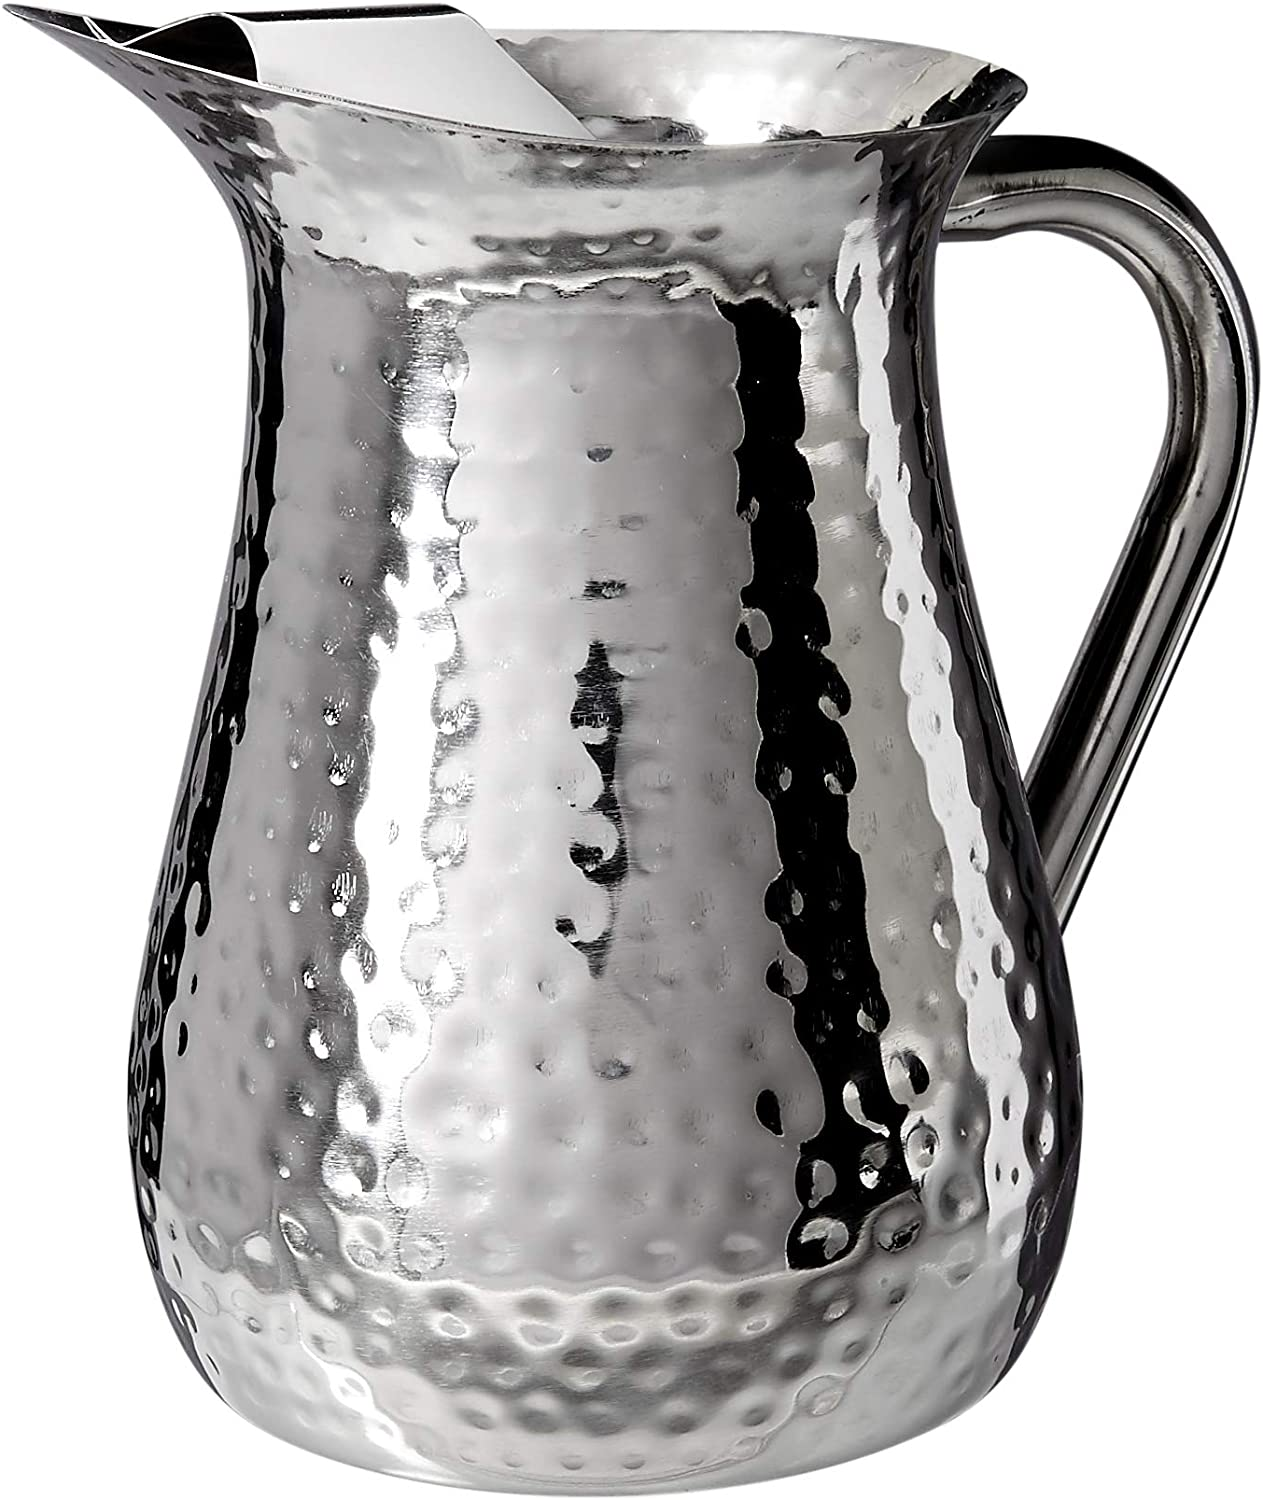 Elegance Hammered 72-Ounce Stainless Steel Pitcher